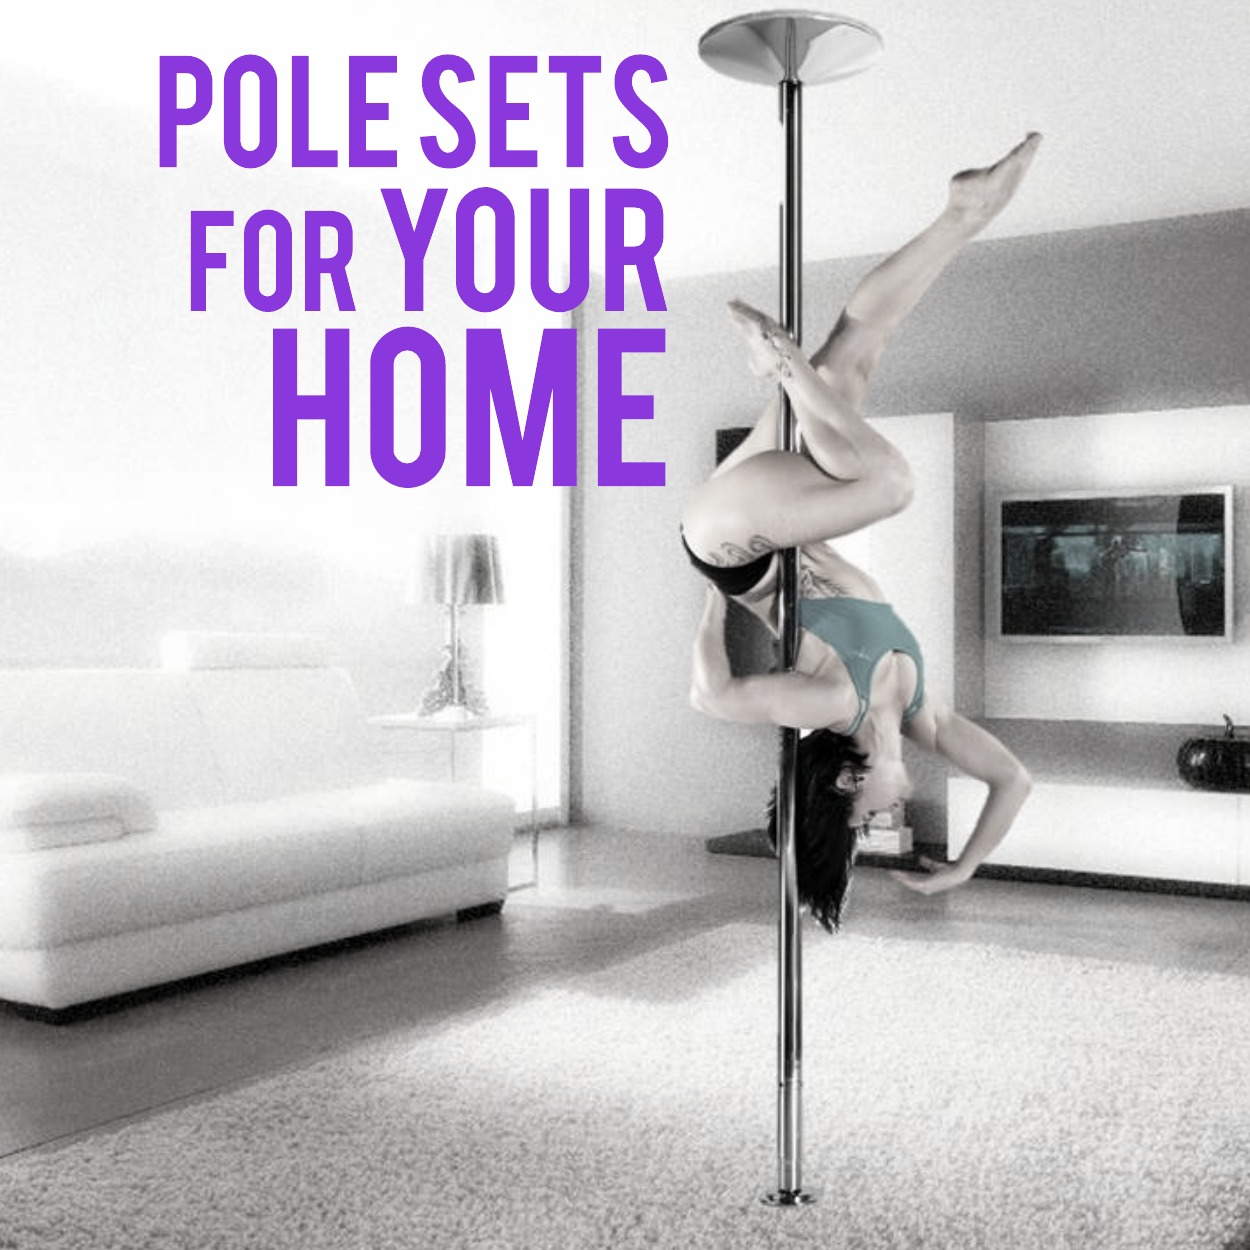 poles for home